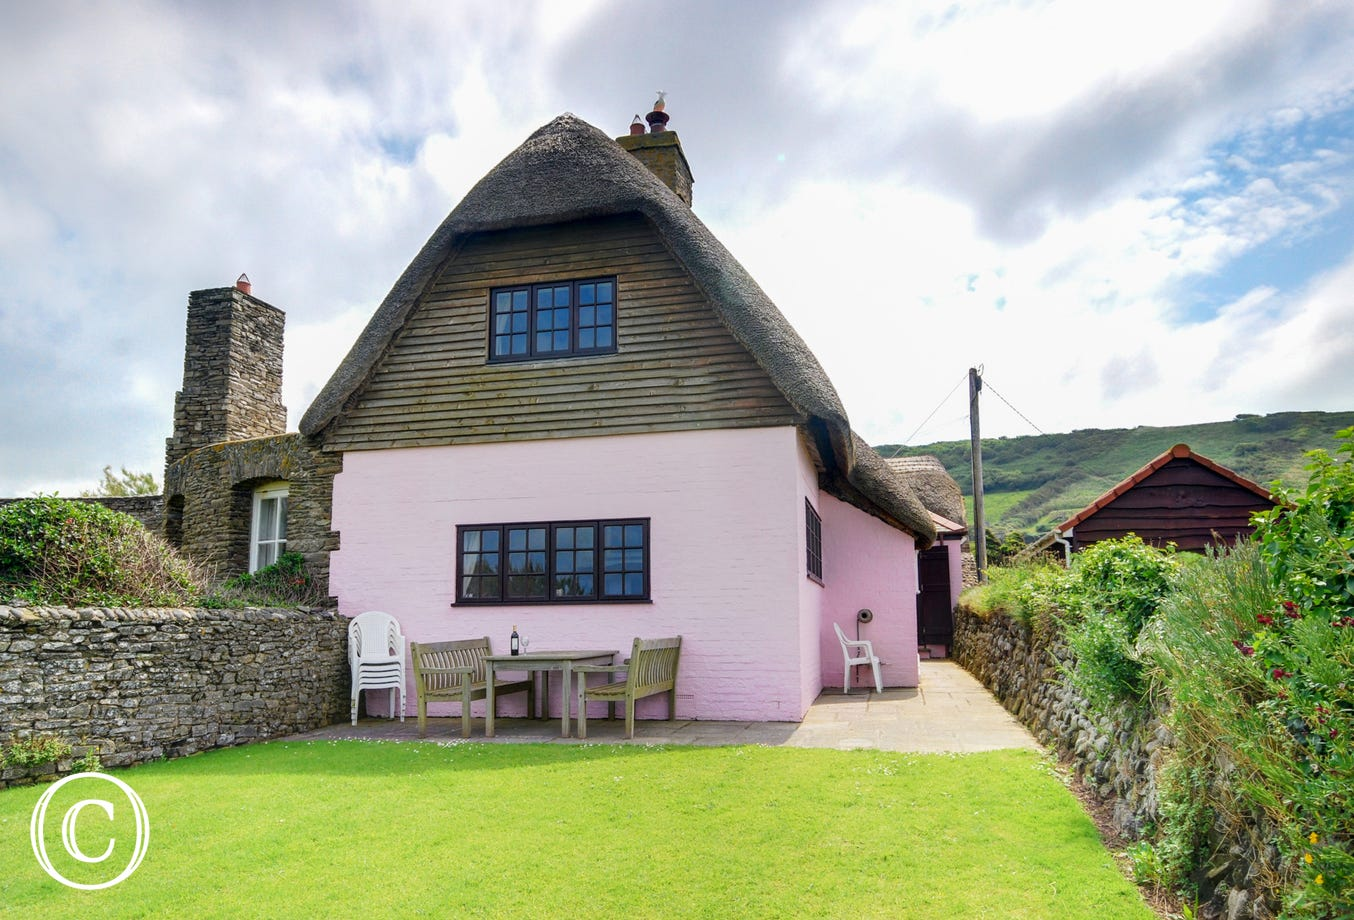 A beautiful traditional thatched Devon cottage right by the sea